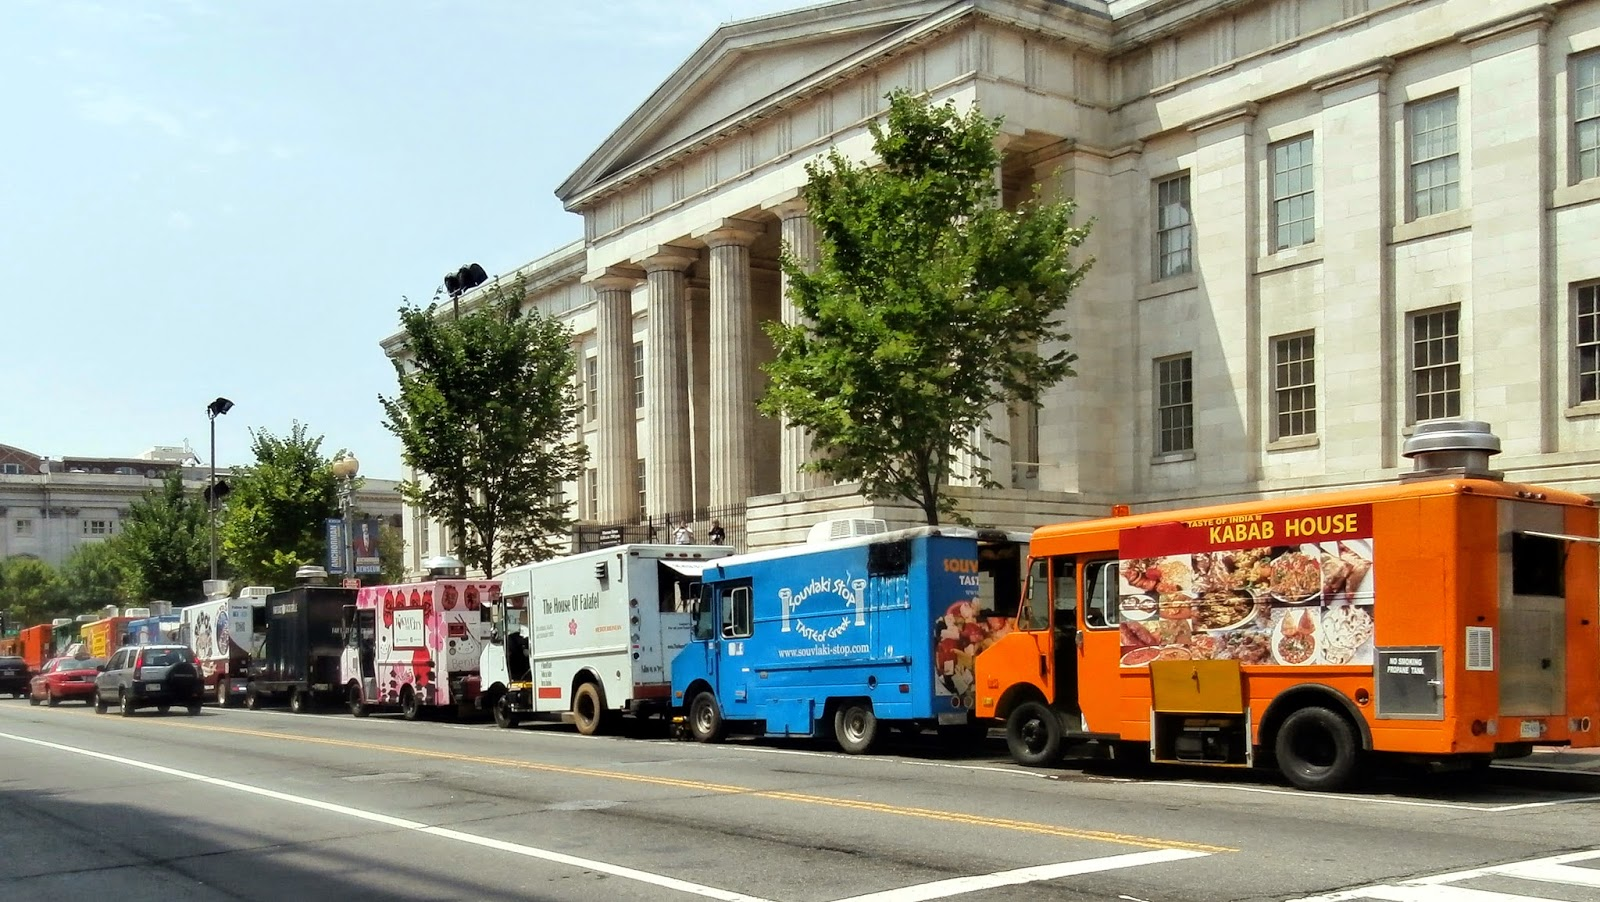 Colorful food trucks parked on the street in front of the National Archives building in Washington DC